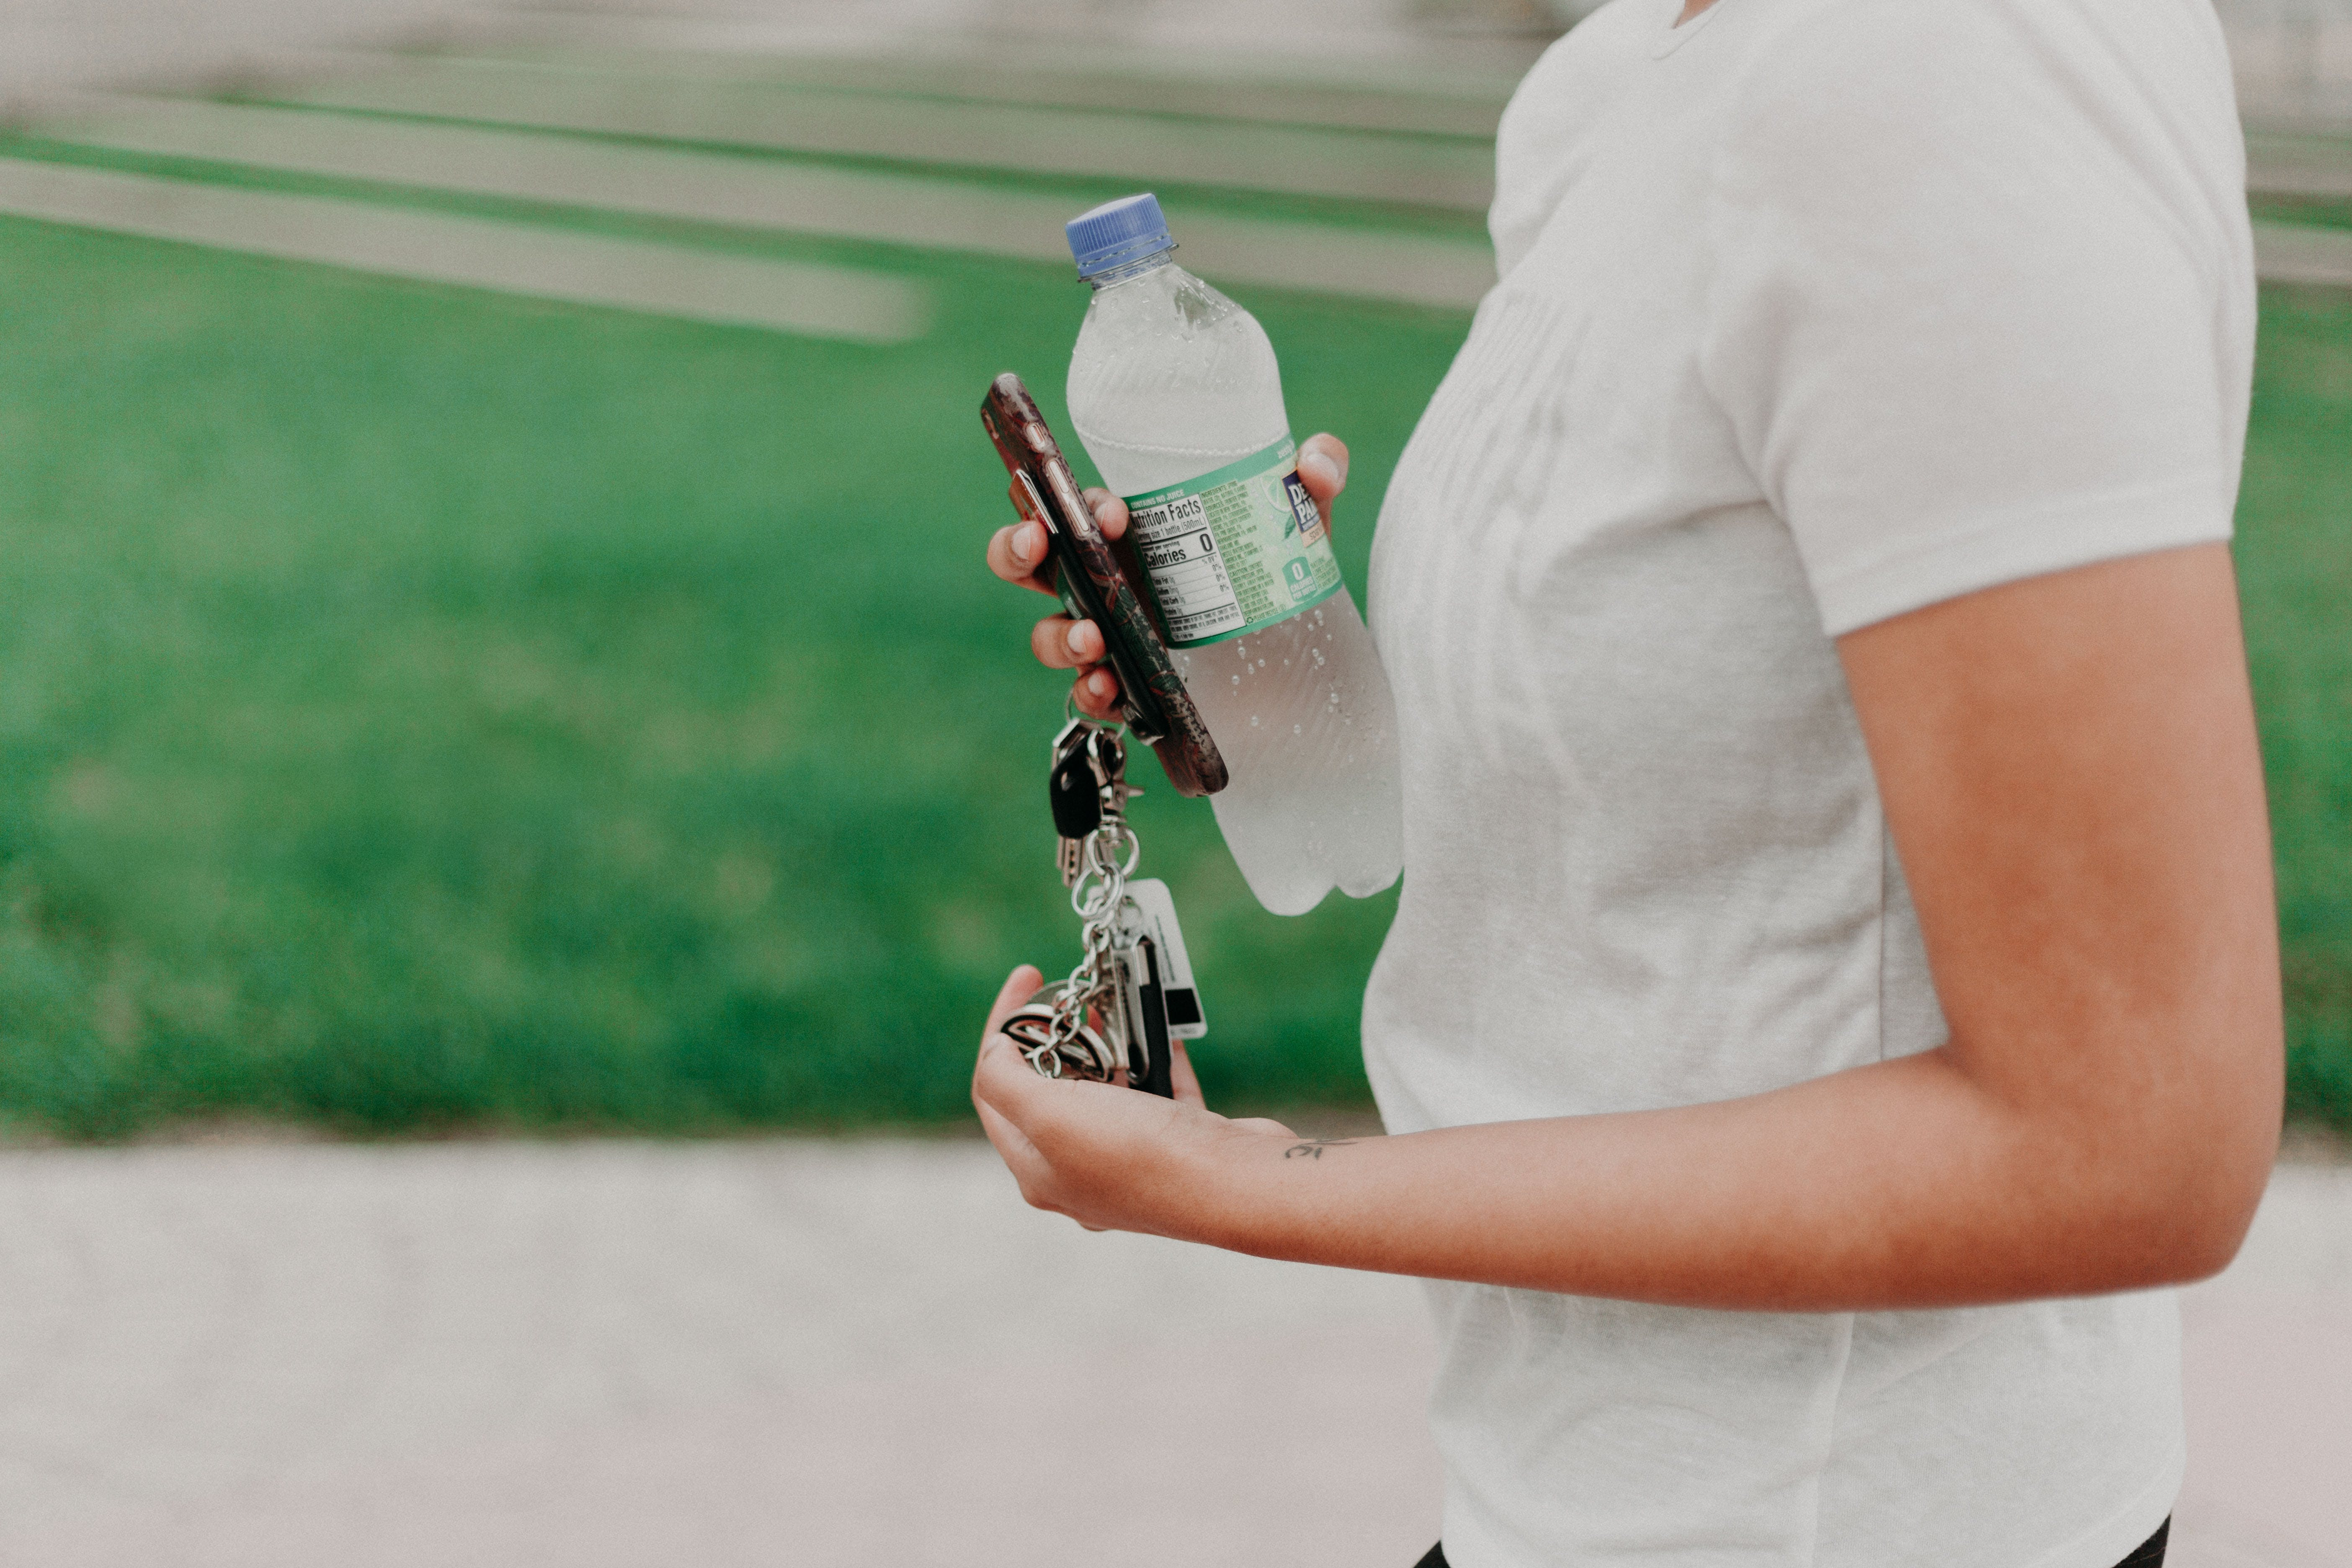 Person Holding Key, Smartphone, And Plastic Bottle